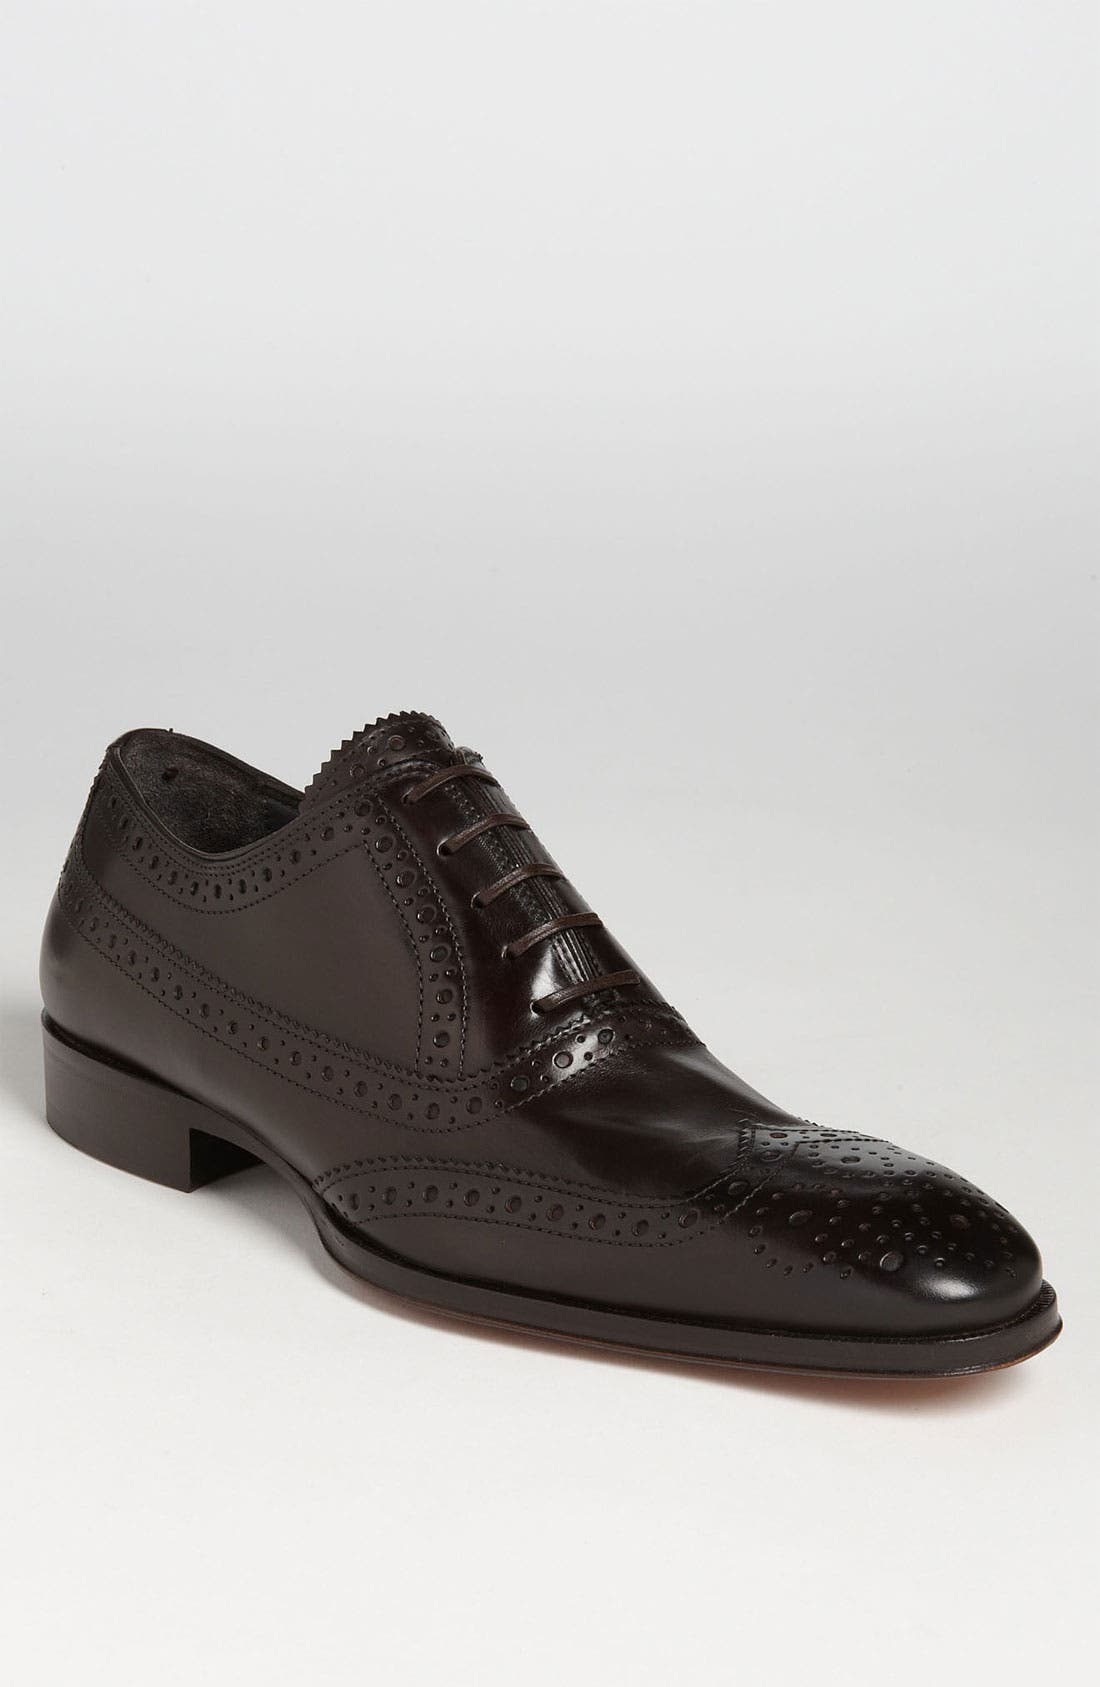 'Windsor' Wingtip Oxford,                             Main thumbnail 1, color,                             209